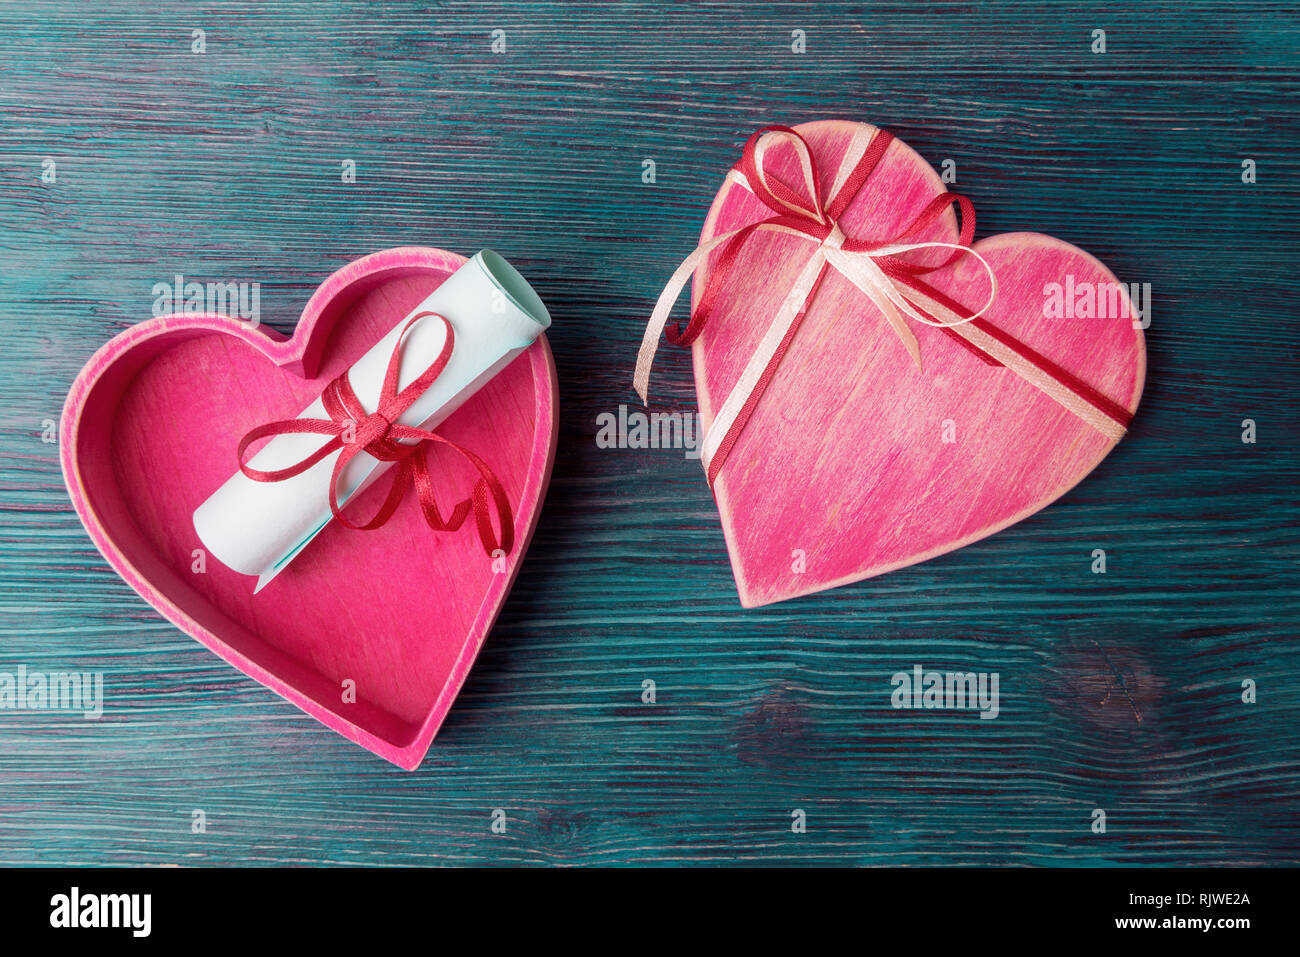 Heart shaped gift box and love letter on blue wooden background Stock Photo